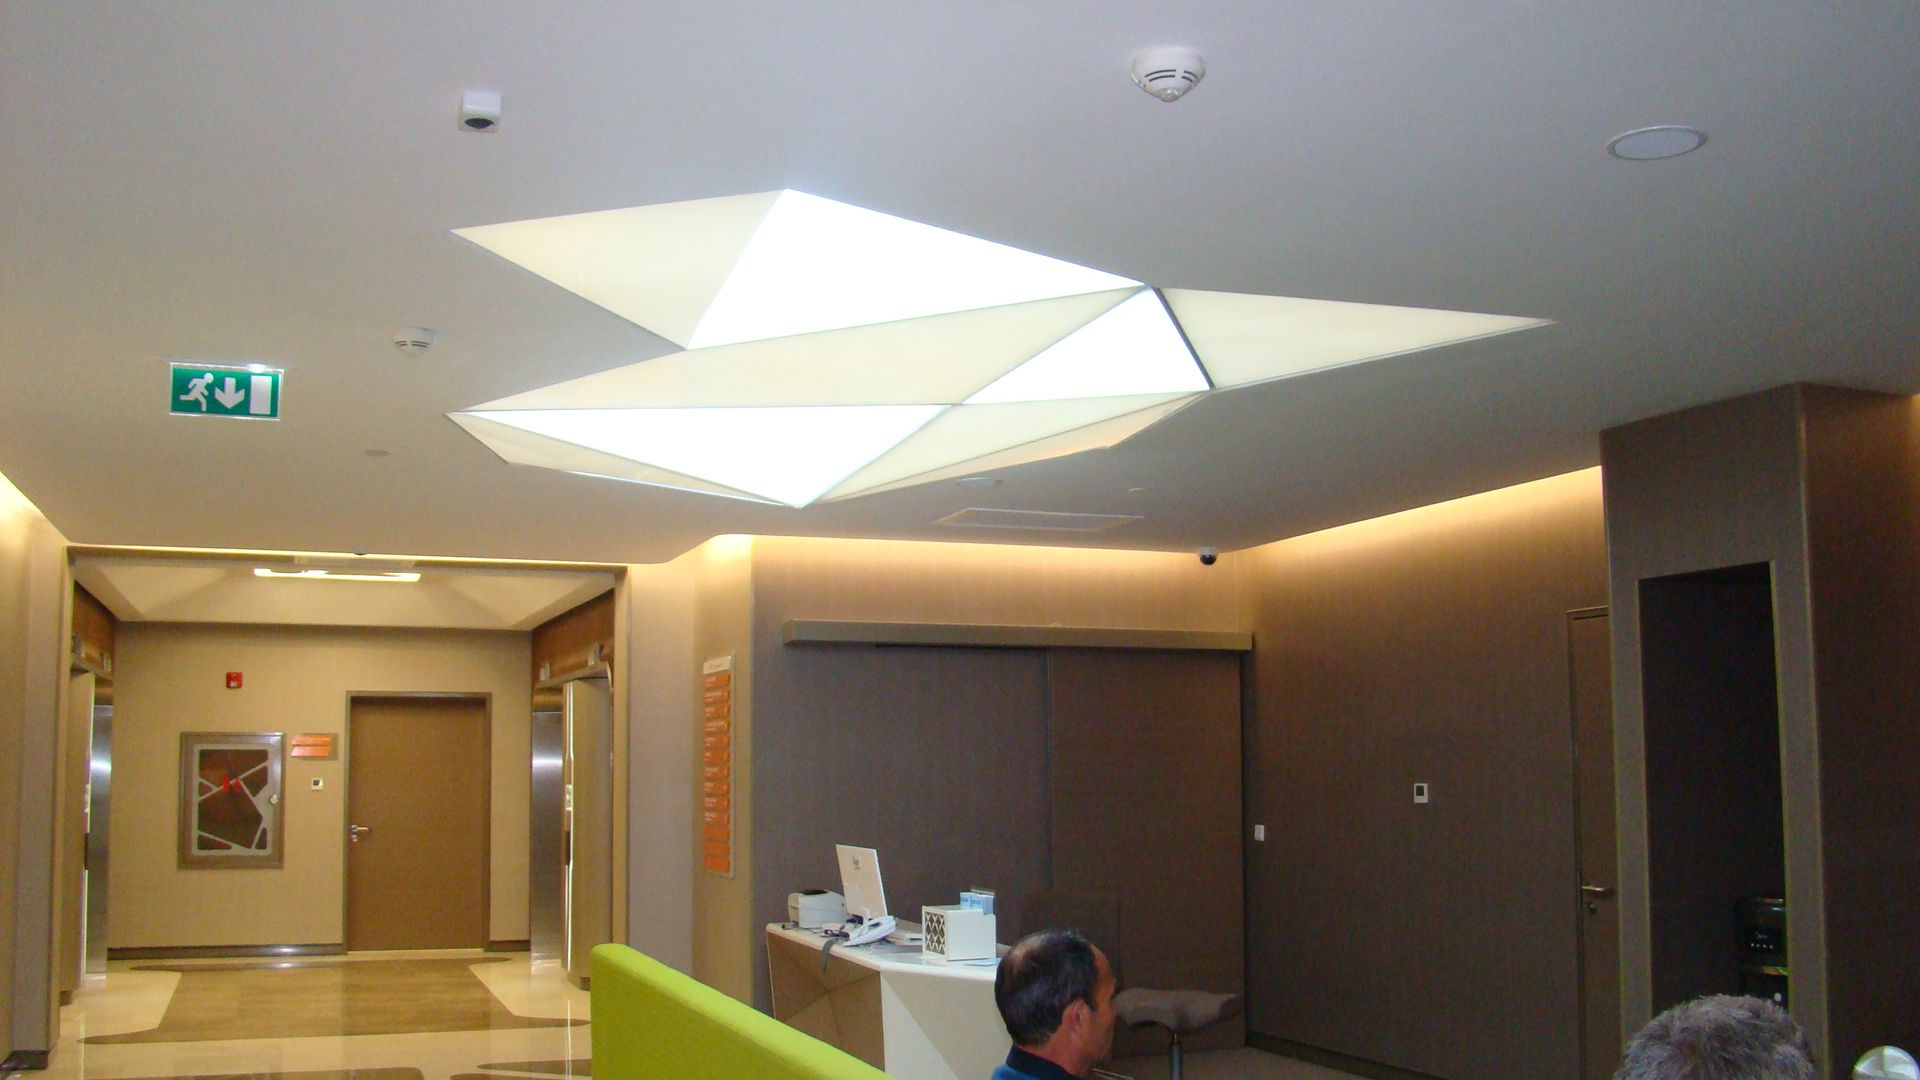 Explore Ceiling Design, Ceiling Lighting And More